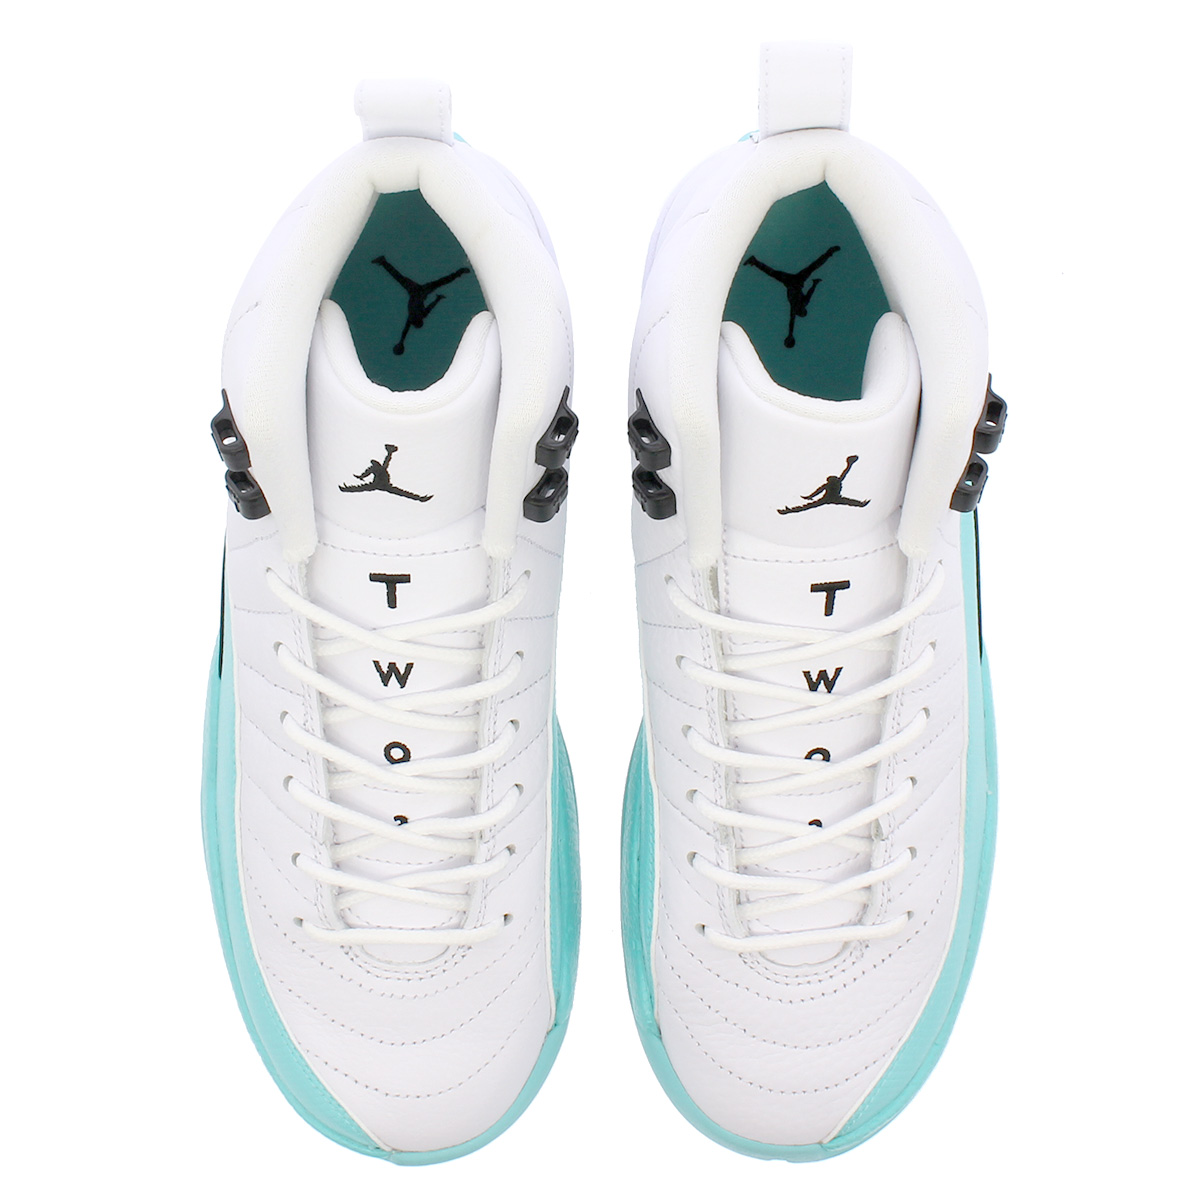 9028b3306a37e5 NIKE AIR JORDAN 12 RETRO GG Nike Air Jordan 12 nostalgic GG WHITE LIGHT AQUA  BLACK 510